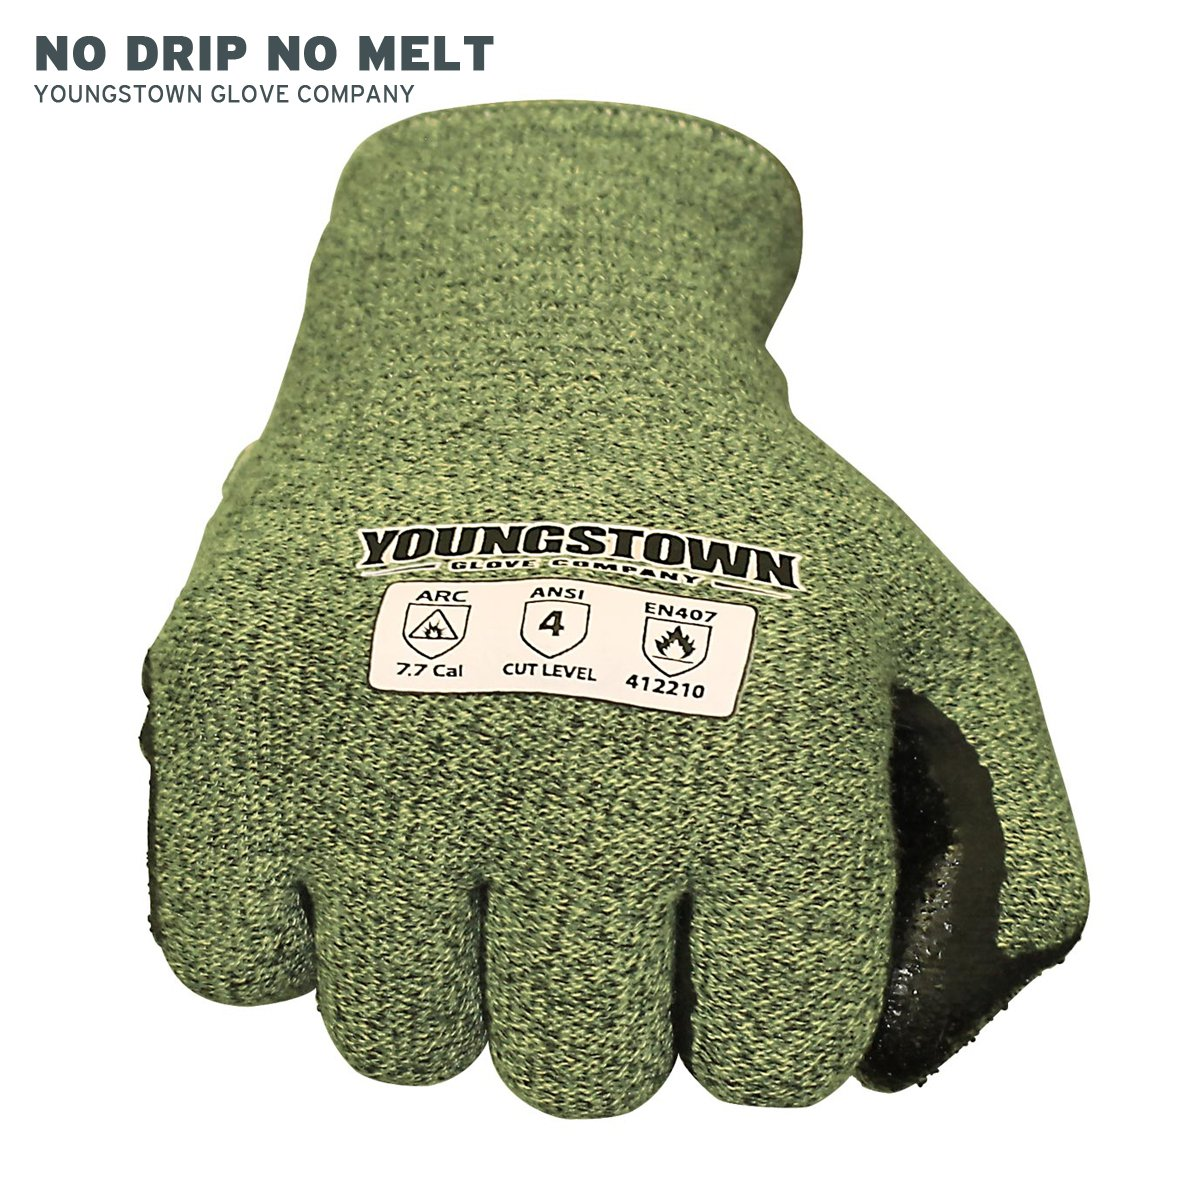 Youngstown Glove 12-4000-60-L FR 4000 Cut-Resistant Gloves, Large, Multicolored by Youngstown Glove Company (Image #5)